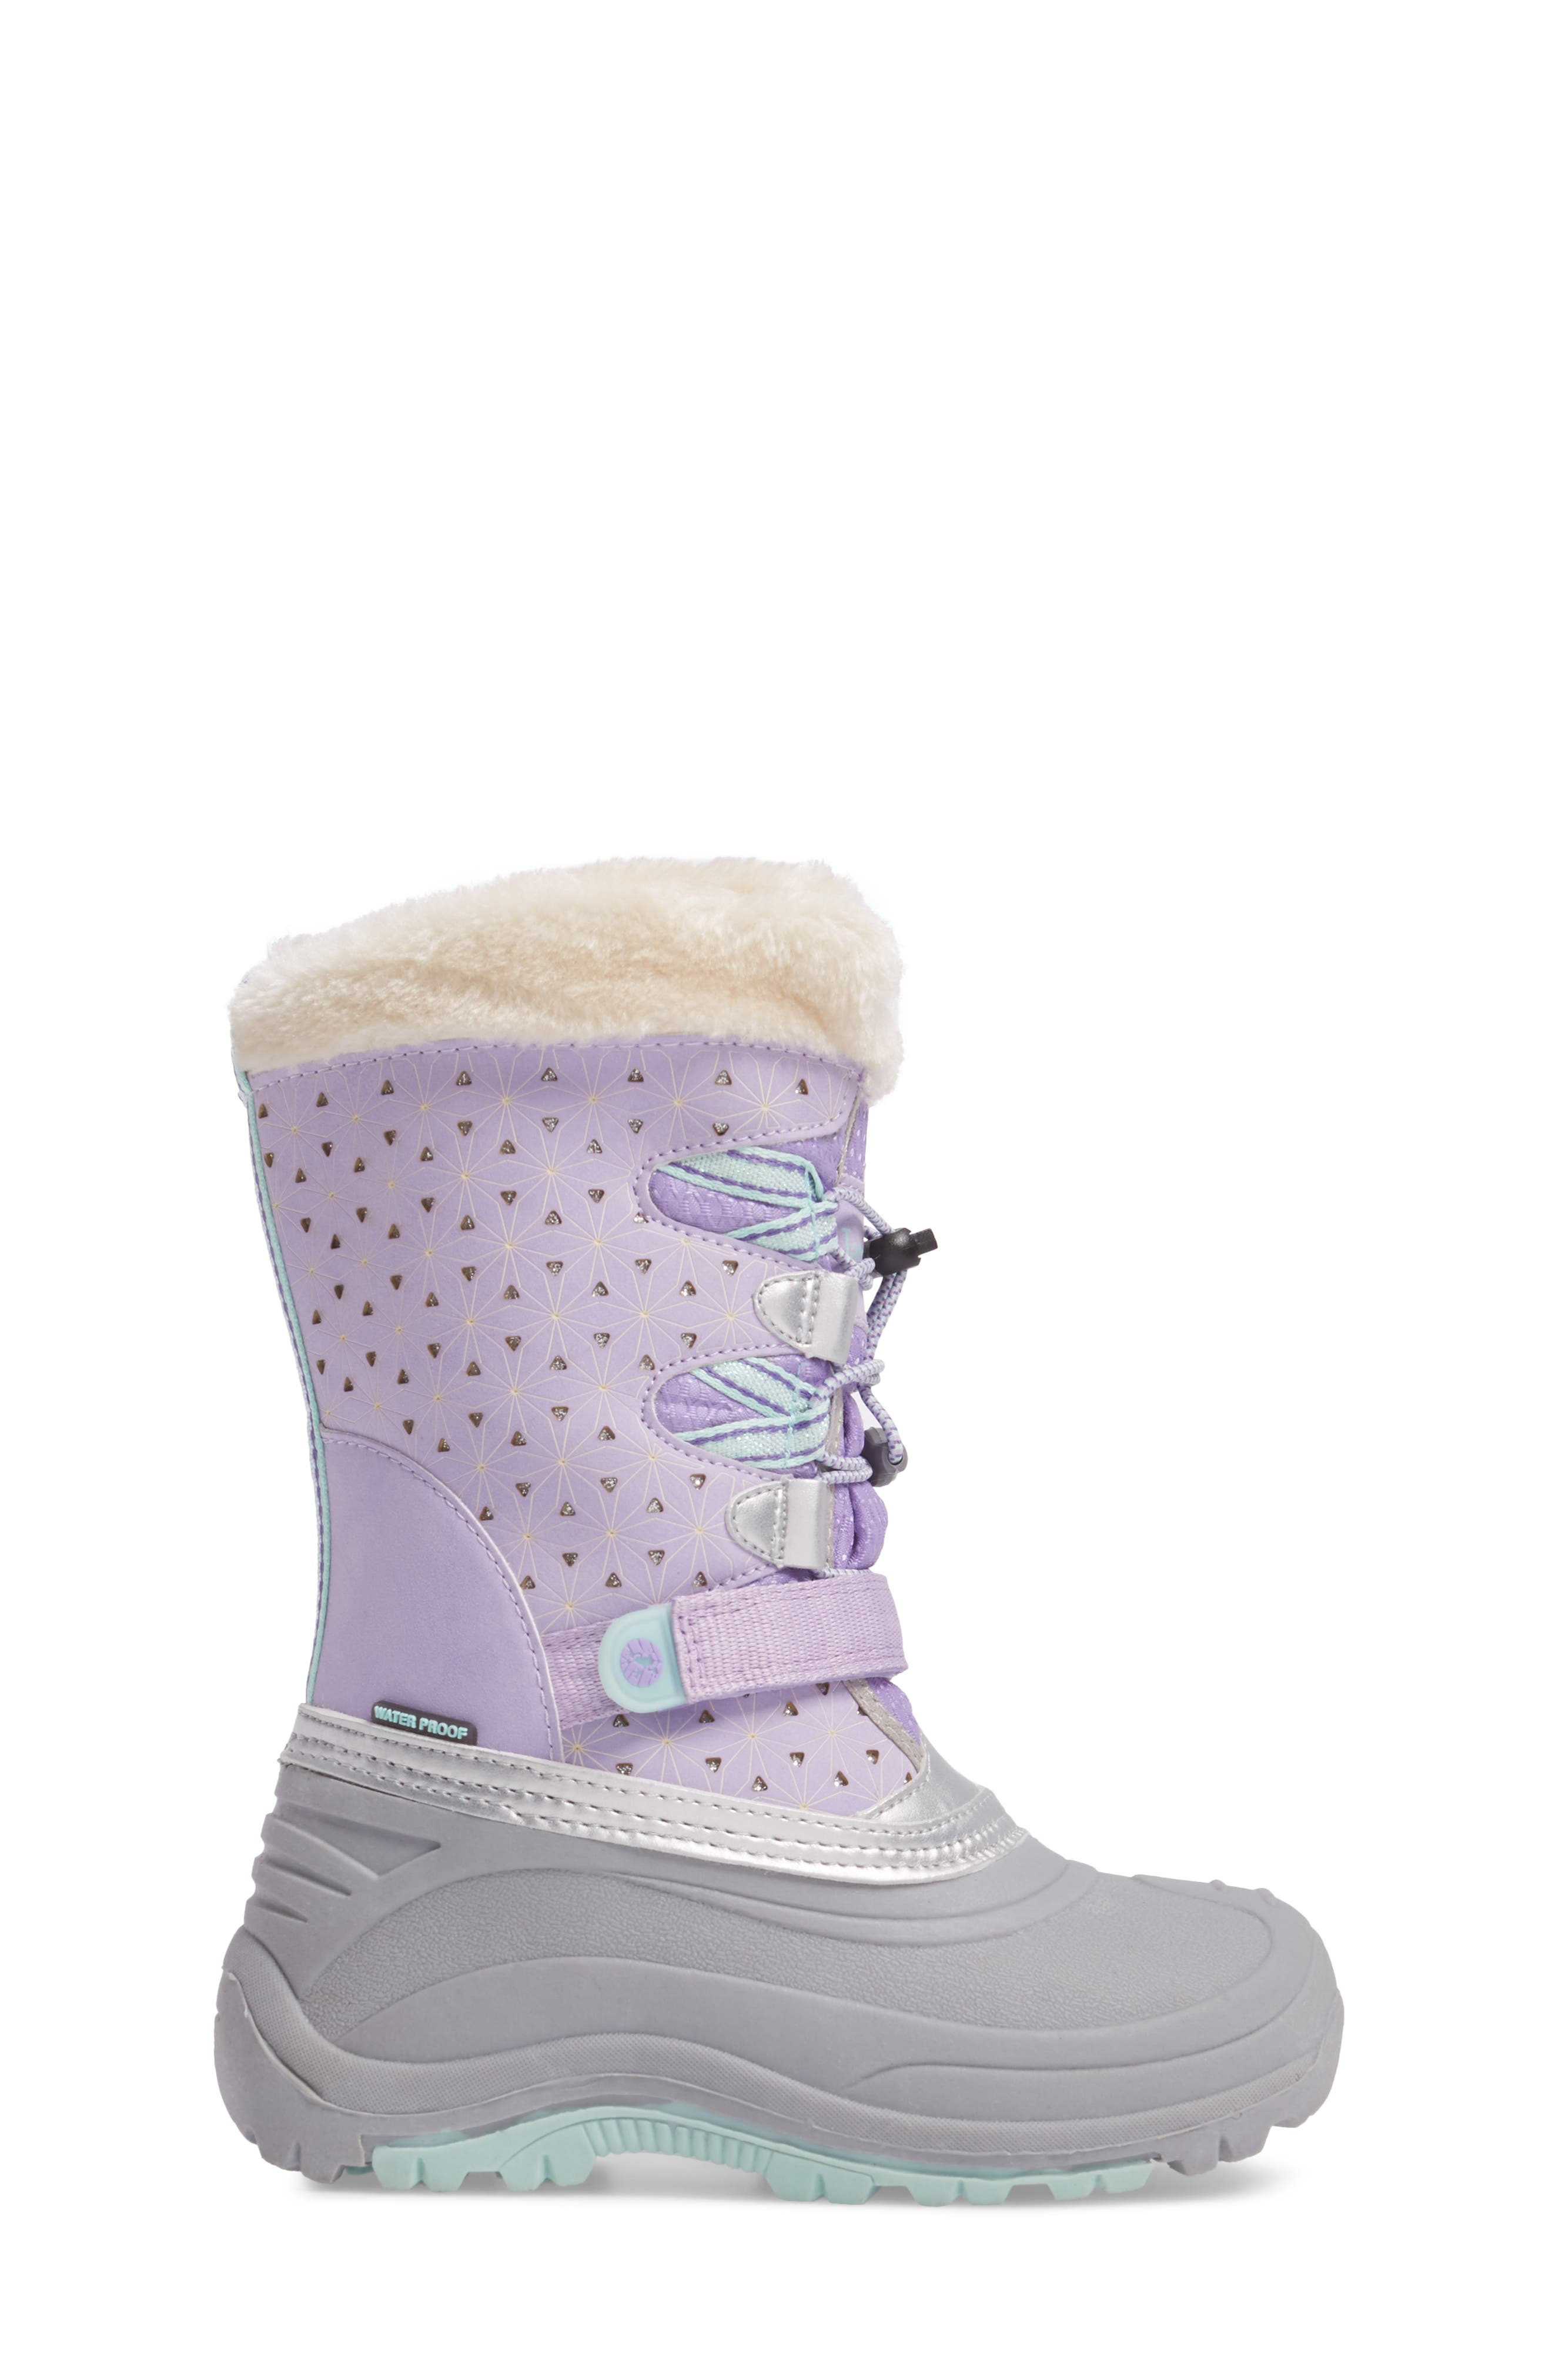 'Venom' Waterproof Insulated Snow Boot,                             Alternate thumbnail 6, color,